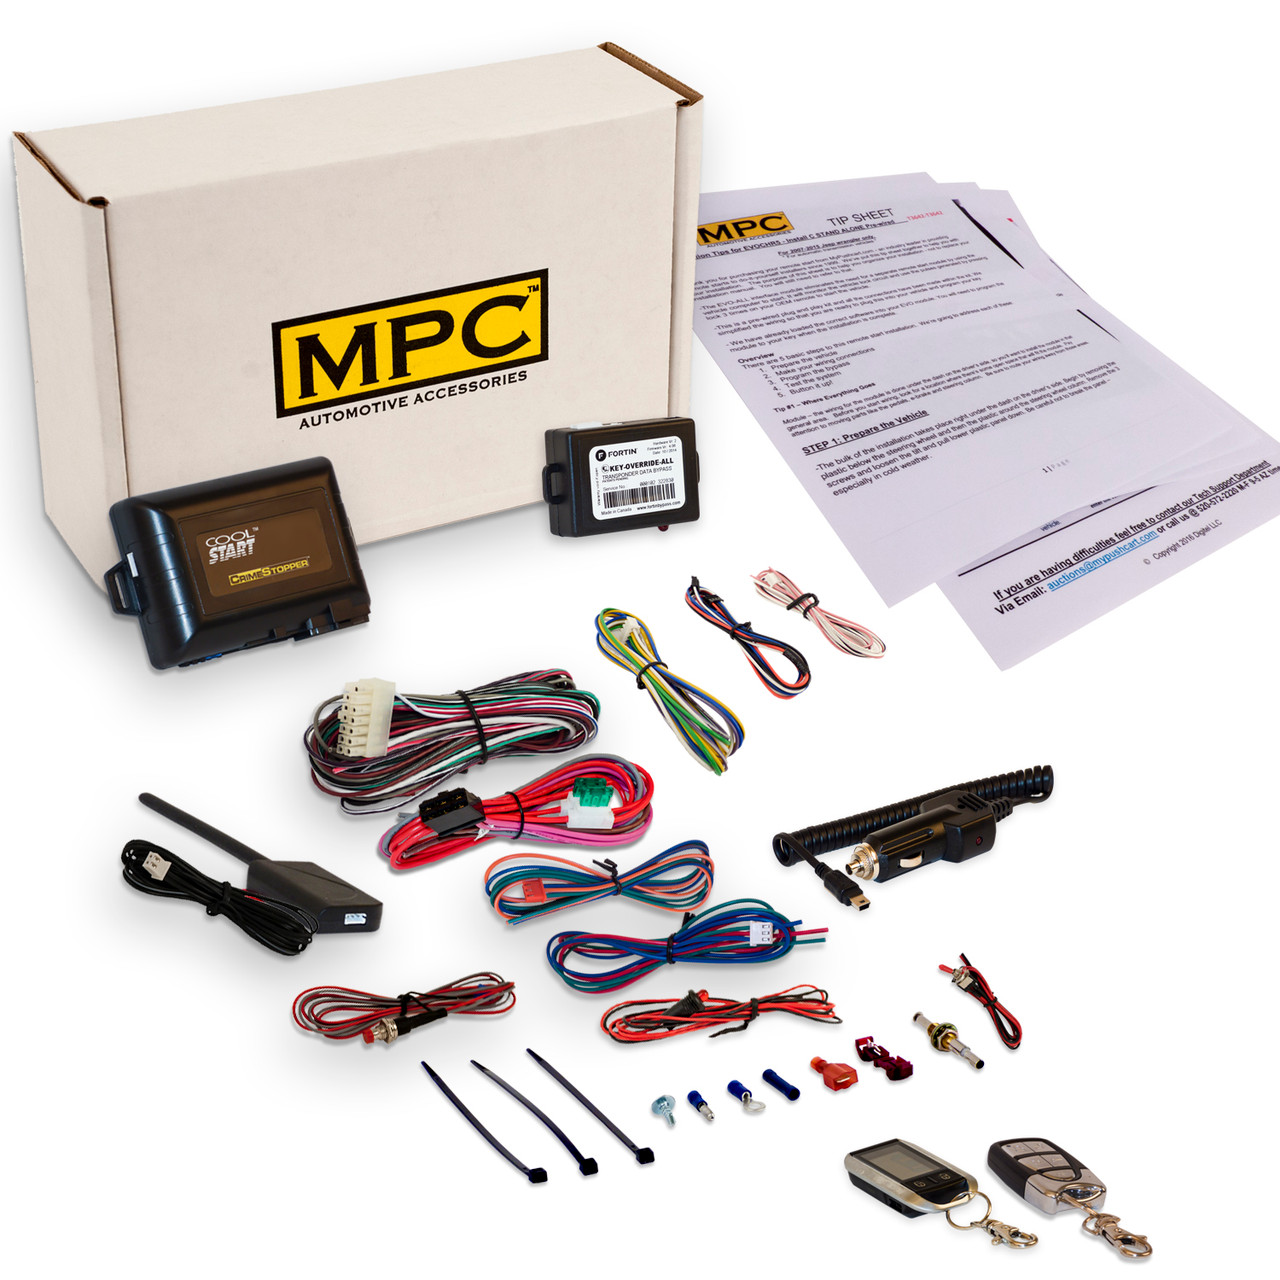 MPC 2-way LCD Remote Start Kit With Keyless Entry For 2003-2006 Lexus LS430